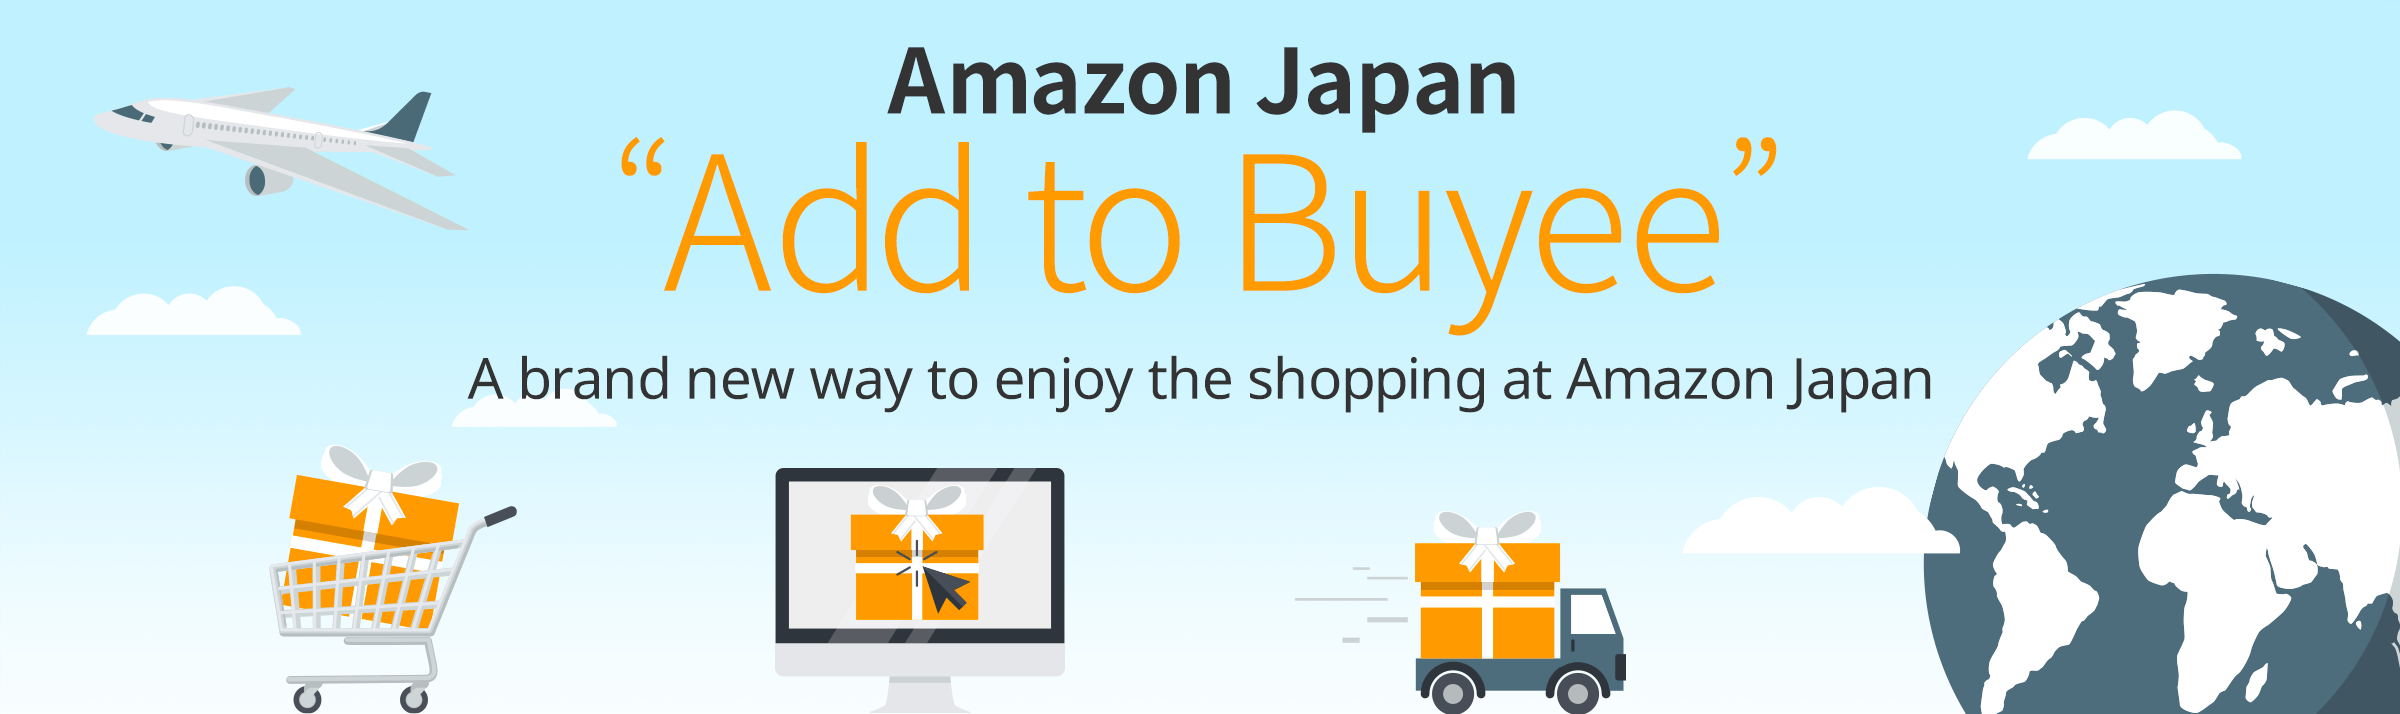 """Amazon Japan """"Add to Buyee"""" A brand new way to enjoy the shopping at Amazon Japan"""